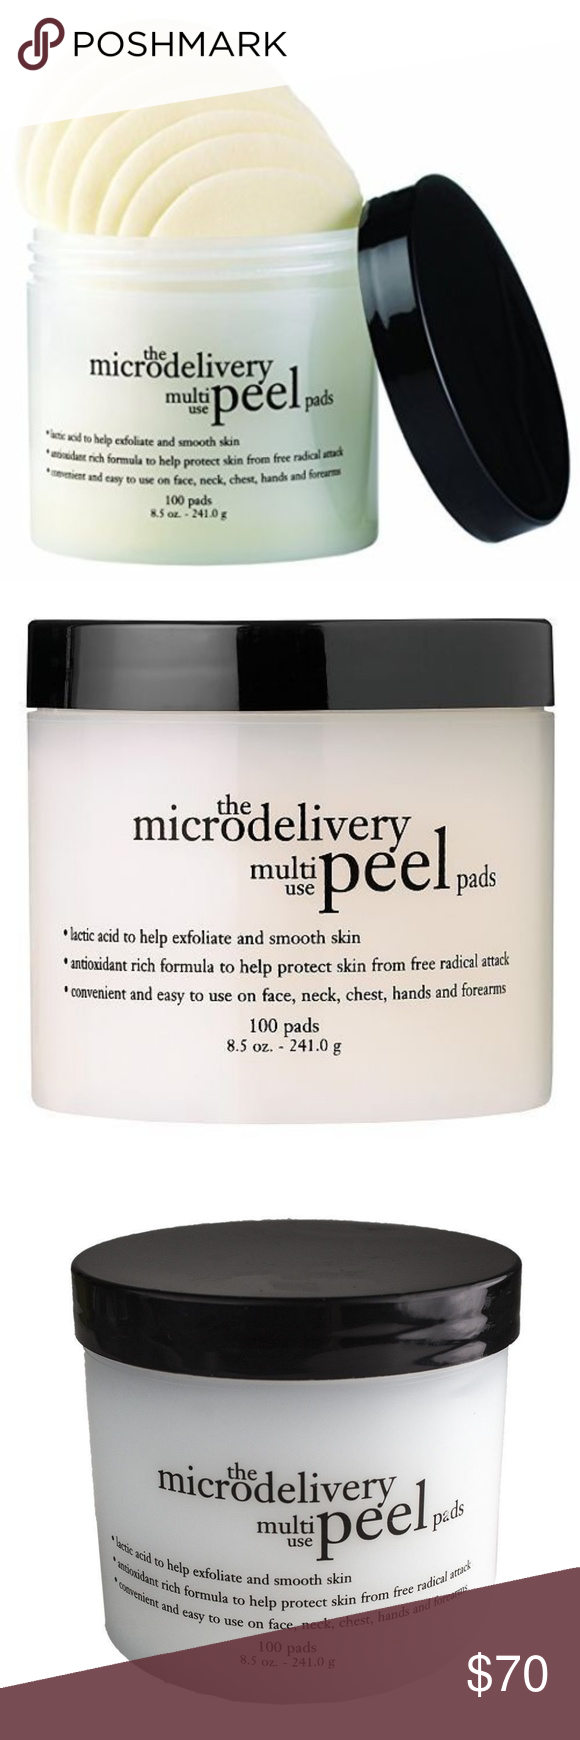 Philosophy The Microdelivery Peel Pads Pads 100 Ct Philosophy The Microdelivery Multi Use Peel Pads 100 Ct 241g 8 5 Peel Pads Exfoliating Pads Skin Protection